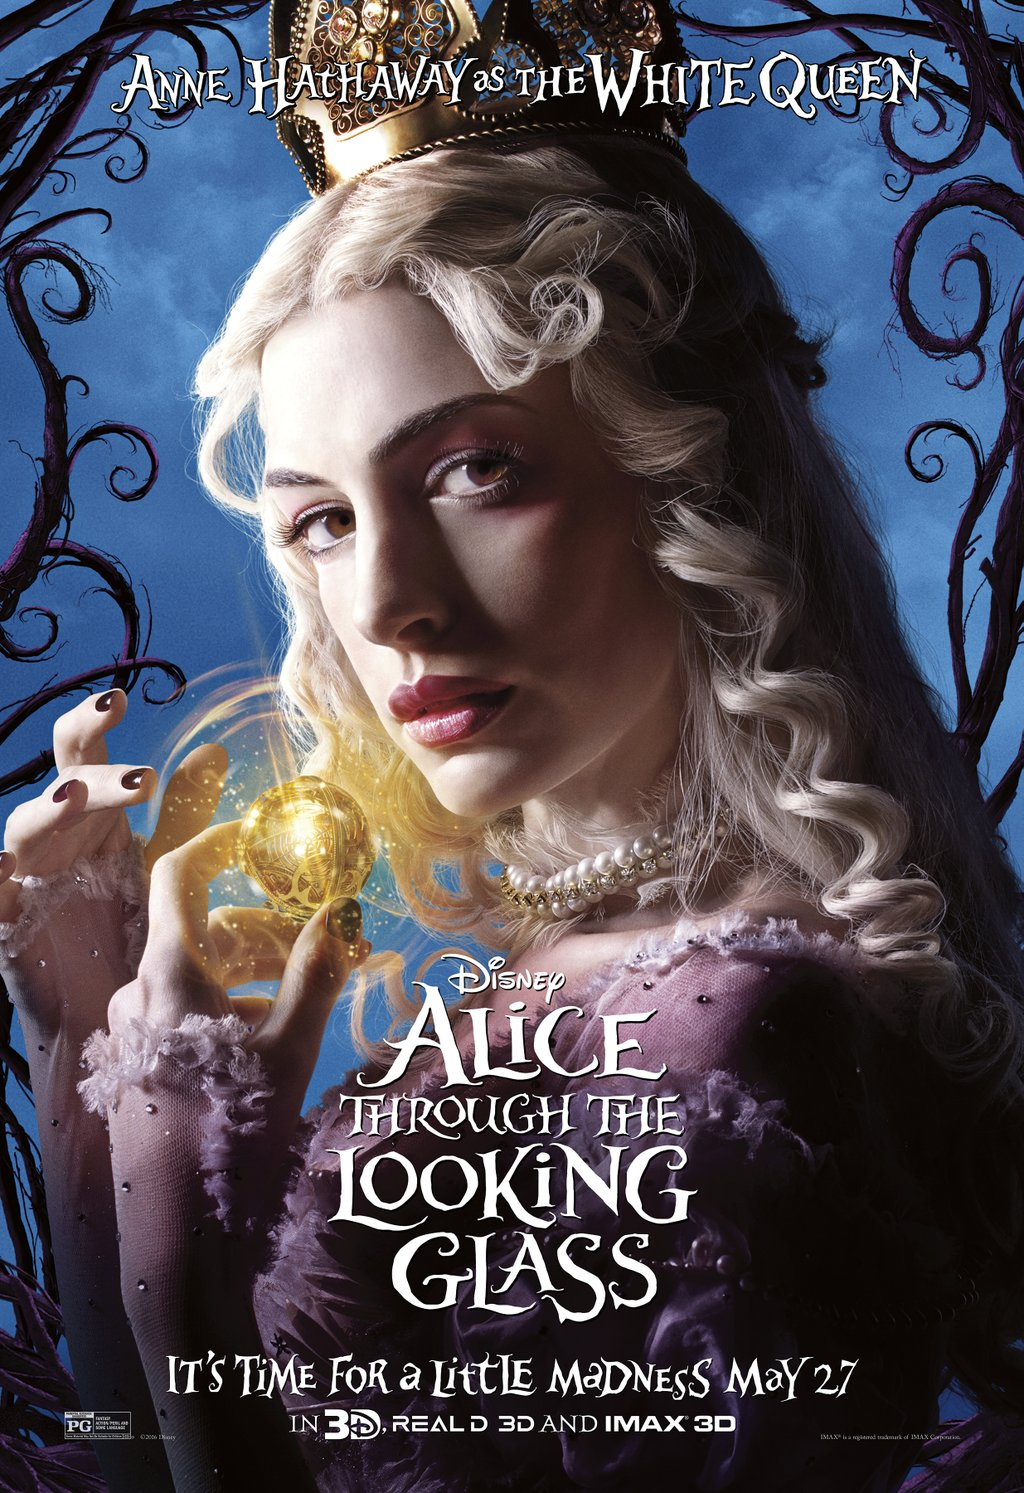 alice_through_the_looking_glass_poster_2016_01.jpg